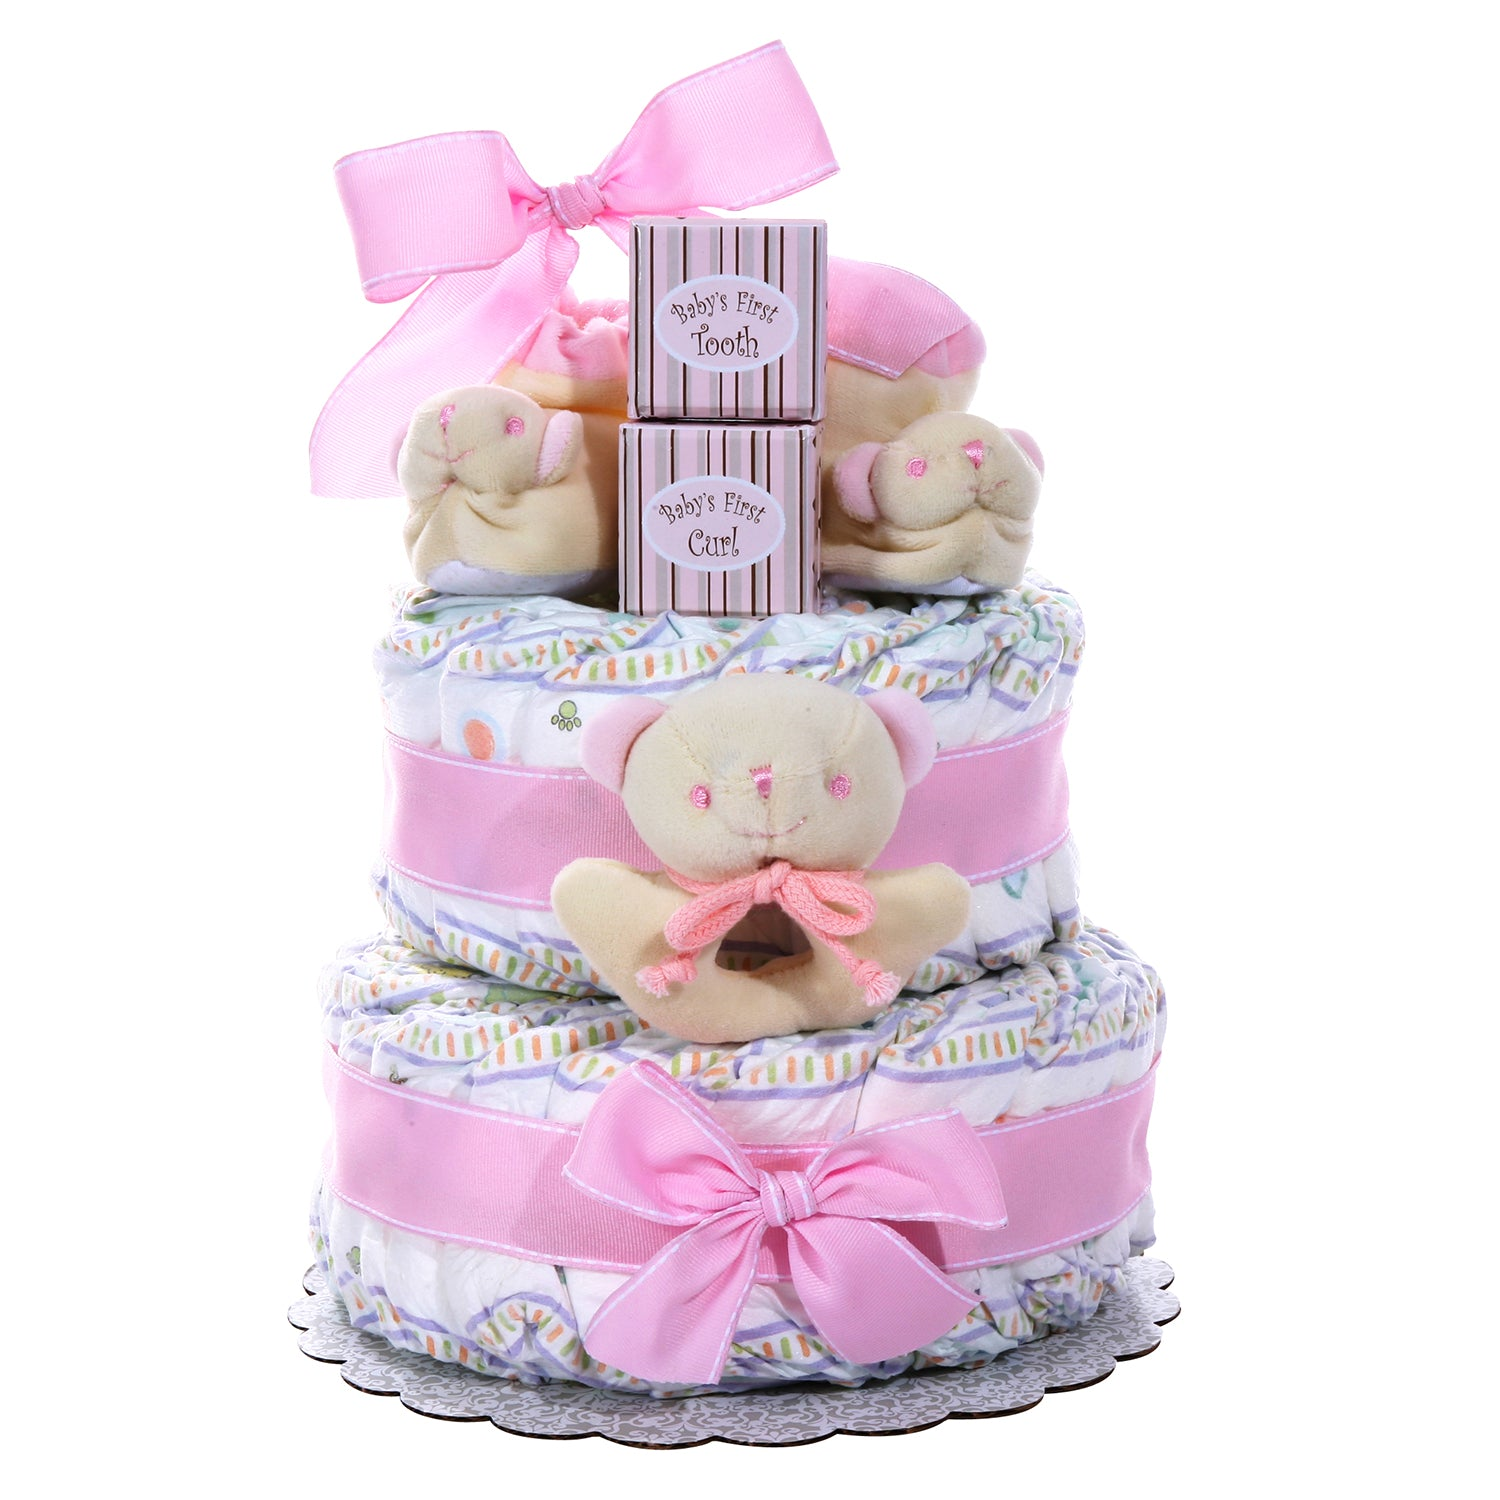 Two-Tier Diaper Cake - Girl's Baby Gift